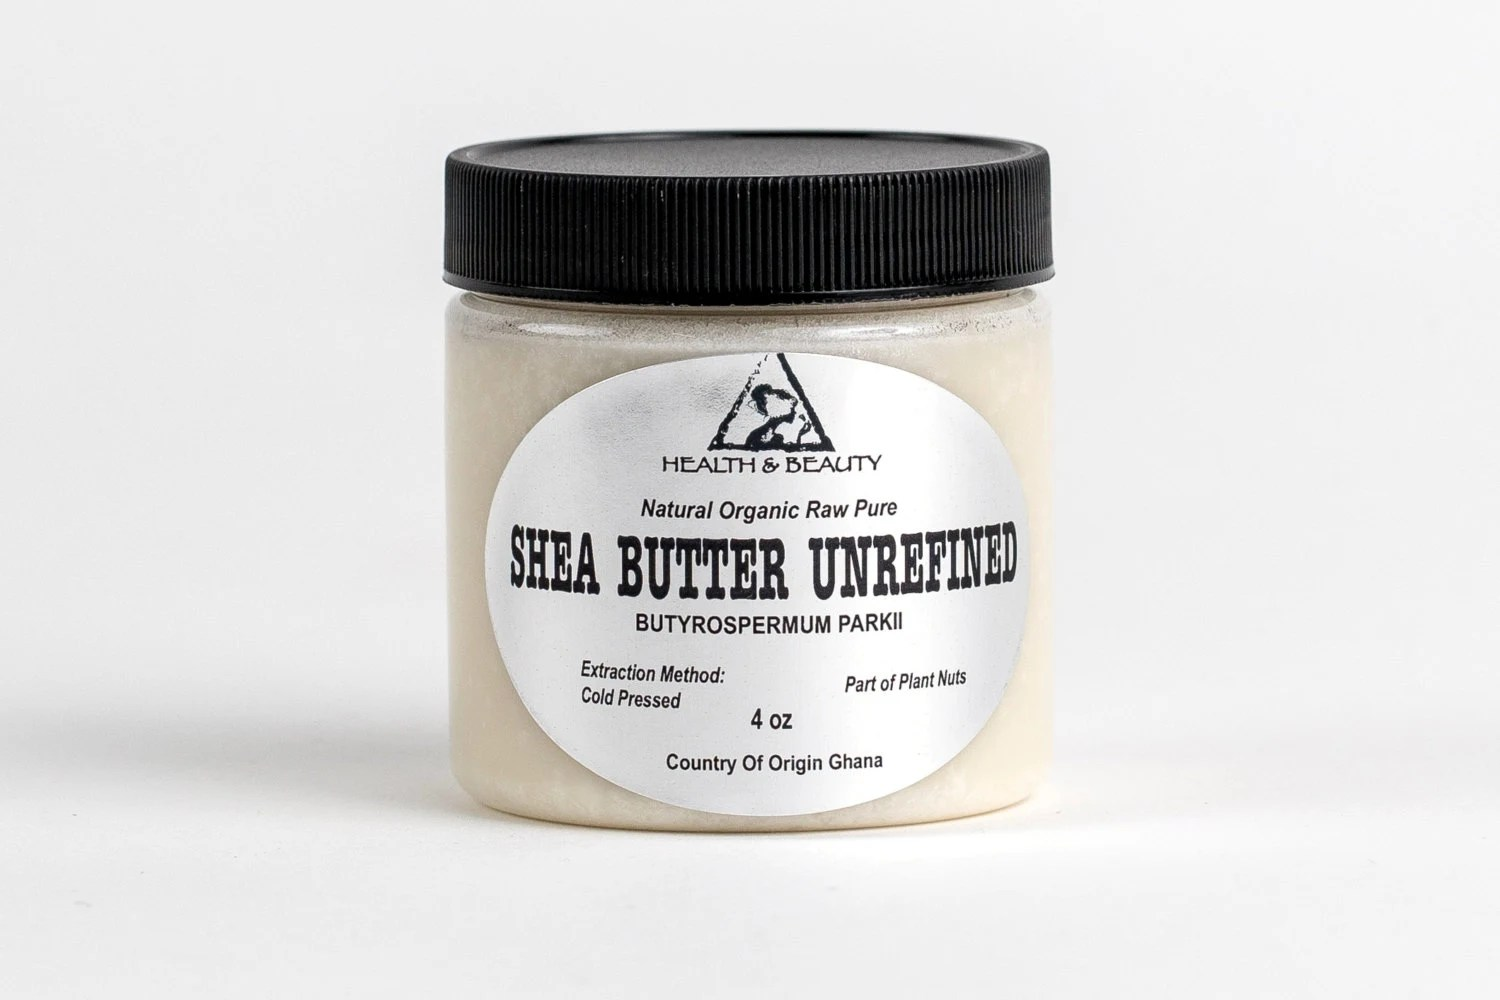 4 oz SHEA BUTTER UNREFINED Ivory White Organic Raw Cold